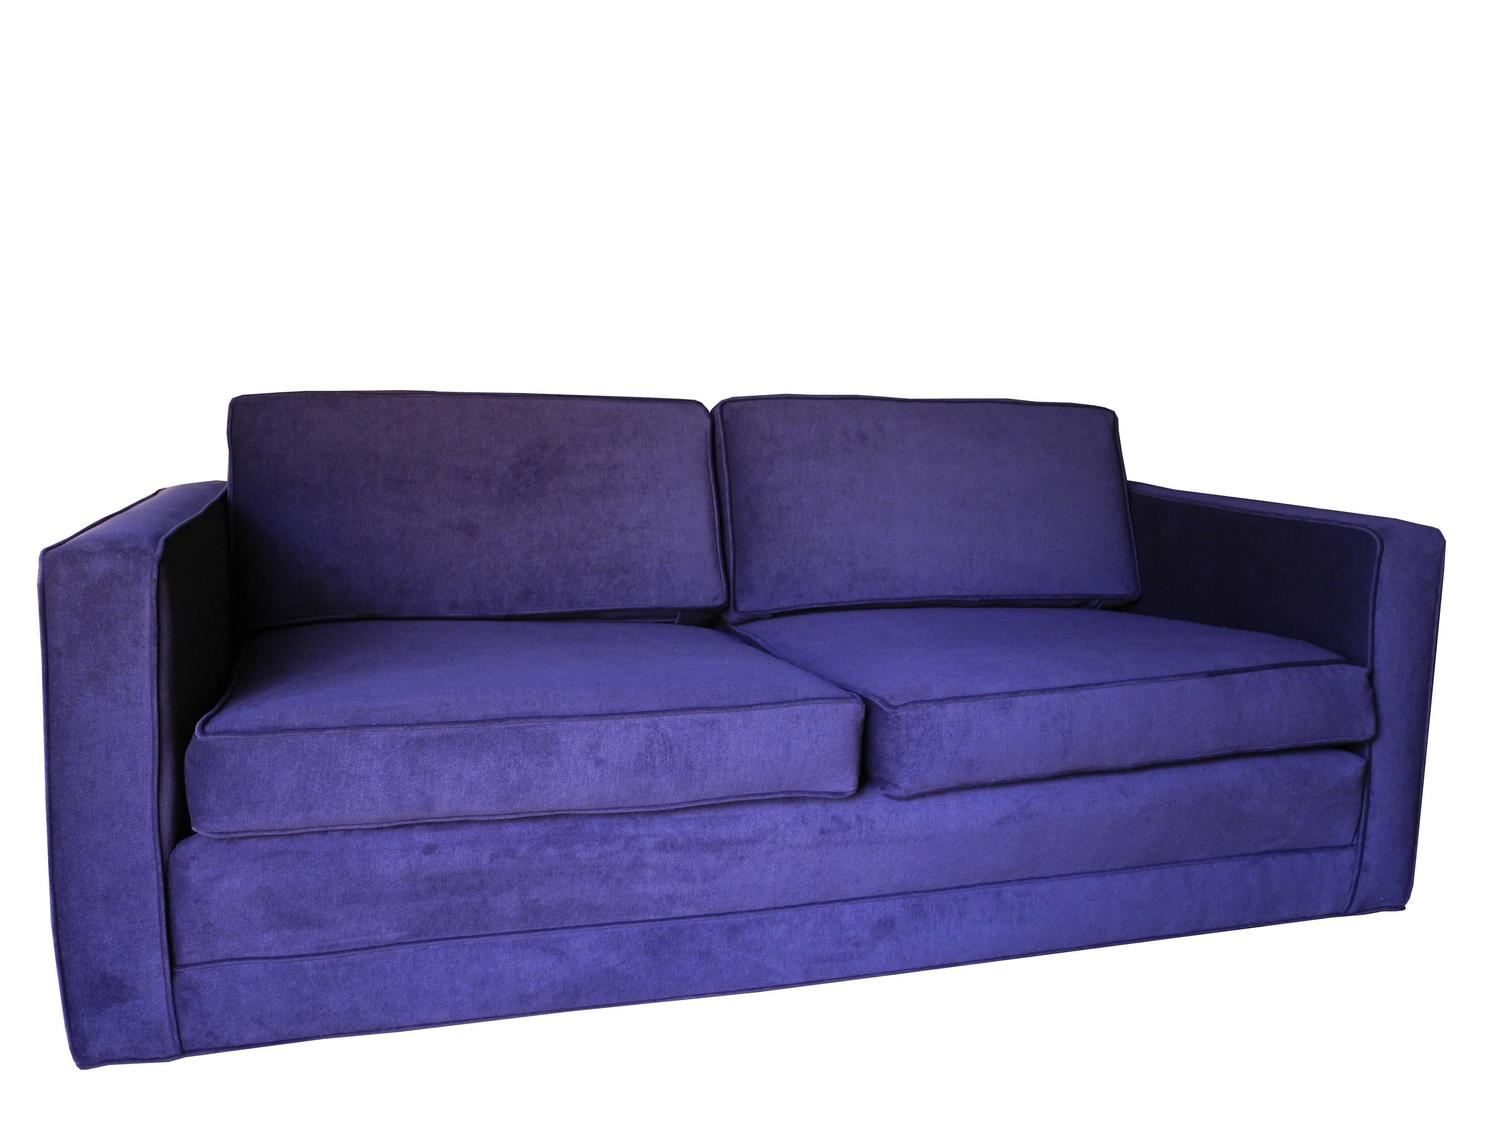 Mid Century Modern Purple Velvet Sofa Settee By Charles Pfister For Knoll For Sale At 1stdibs